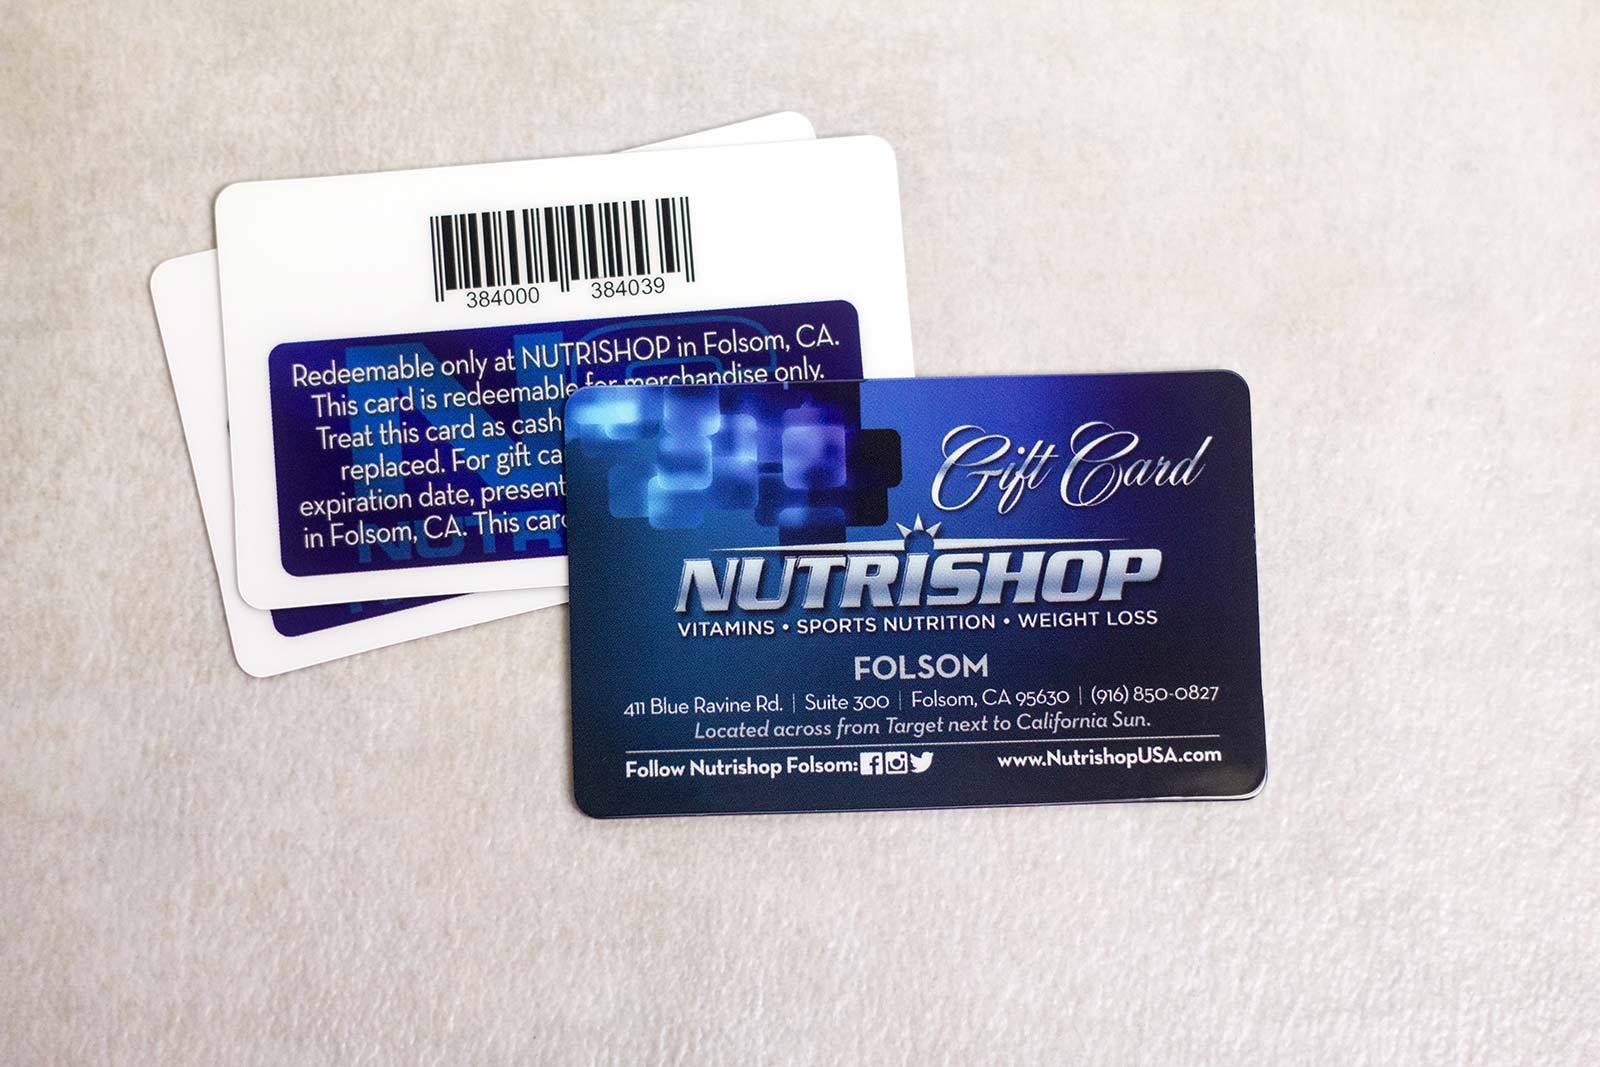 Custom gift cards for your lightspeed pos plastic printers small business gift cards colourmoves Choice Image